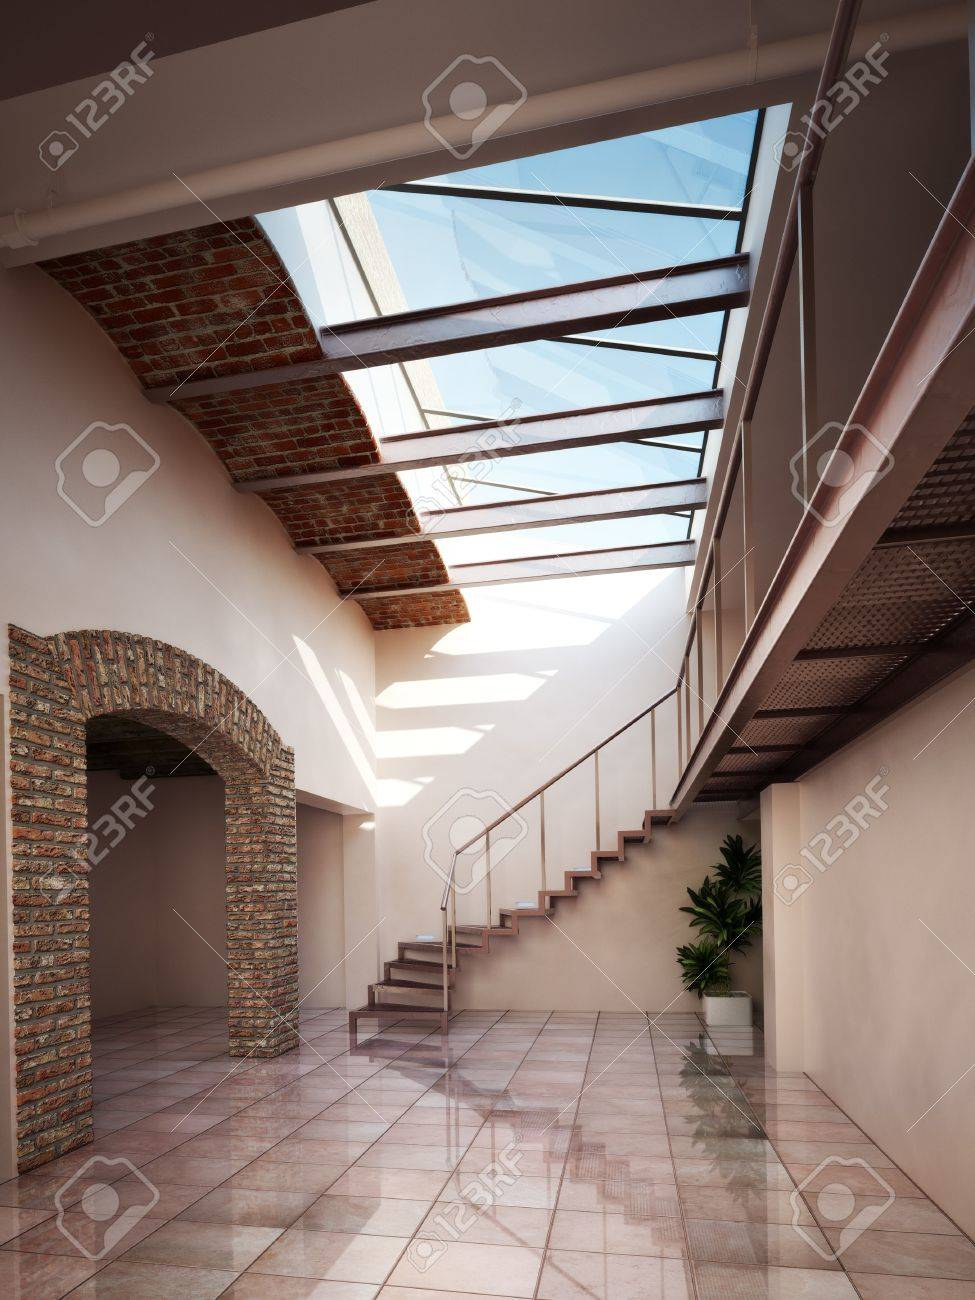 Empty Room Apartment Or Office Space With Rustic Brick And Ceiling Skylights Stock Photo